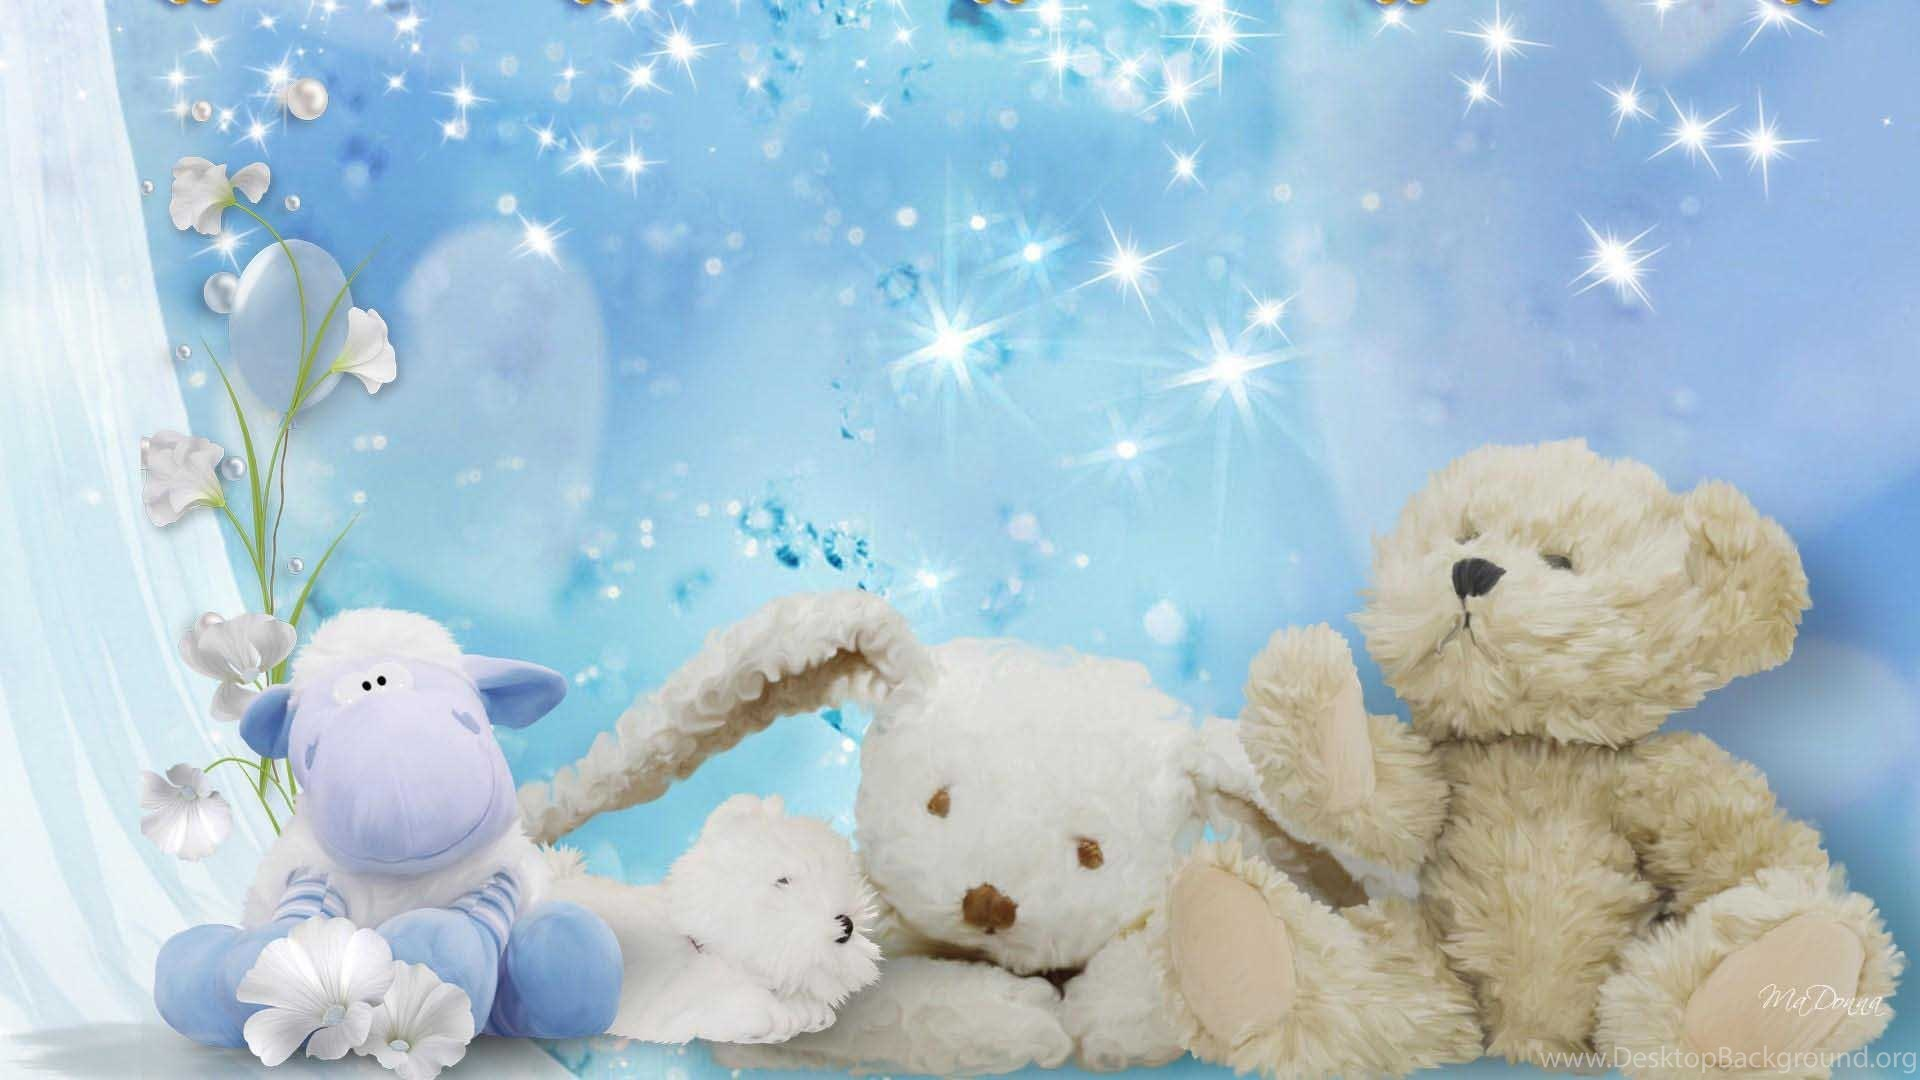 Soft Toys Hd Wallpaper Download The Galleries Of Hd Wallpaper